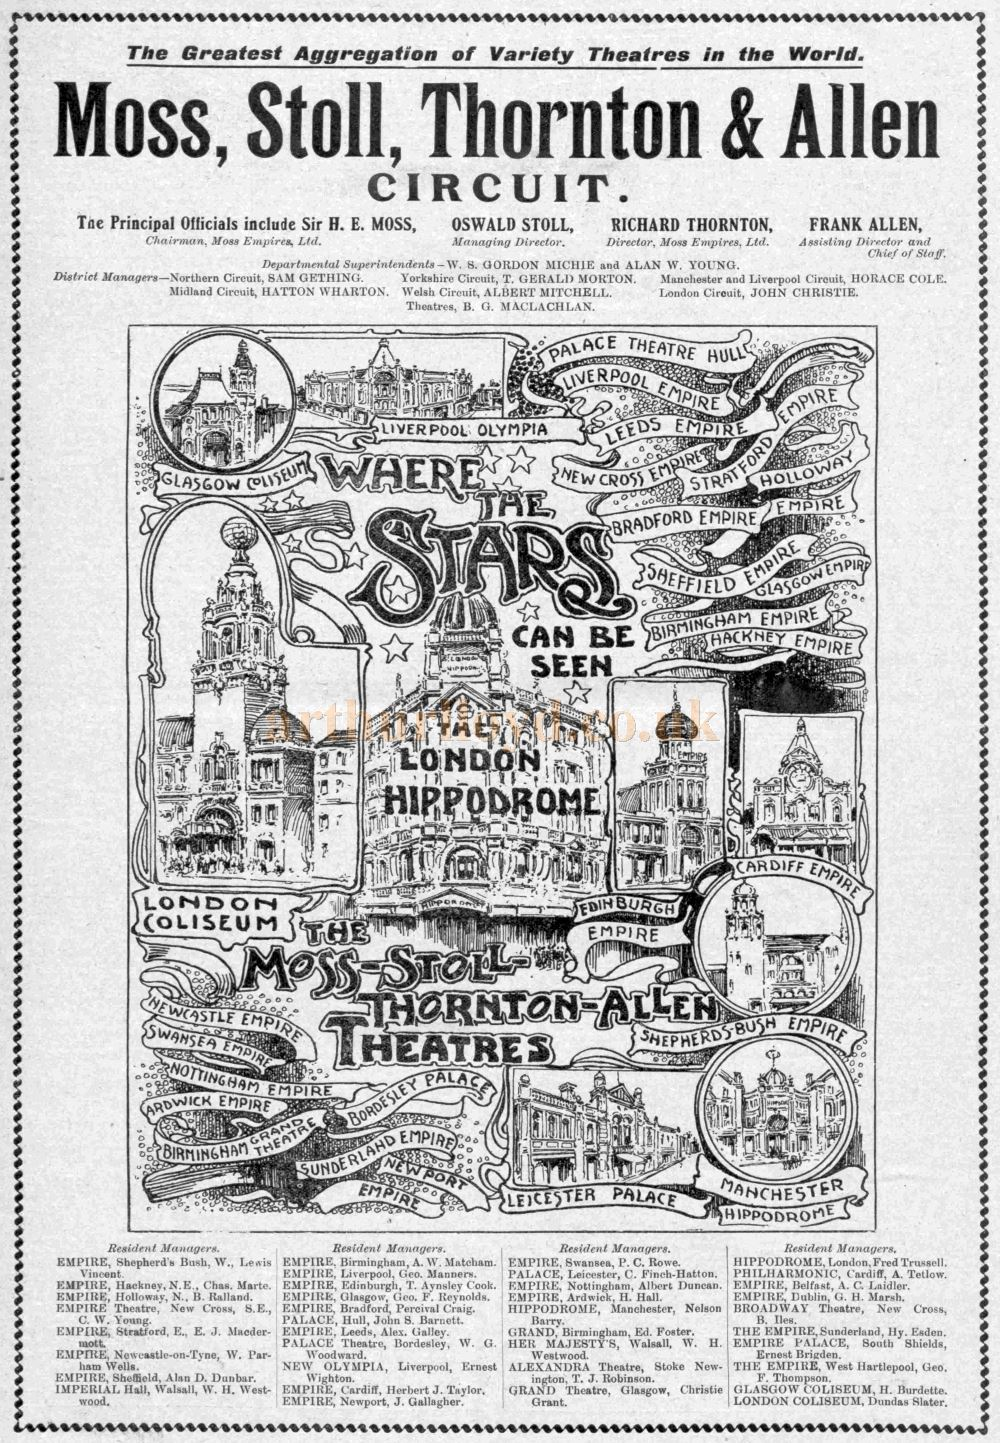 An Illustrated Advertisement for the Moss Stoll Thornton & Allen Circuit - From The Music Hall and Theatre Review, 16th of December 1909.